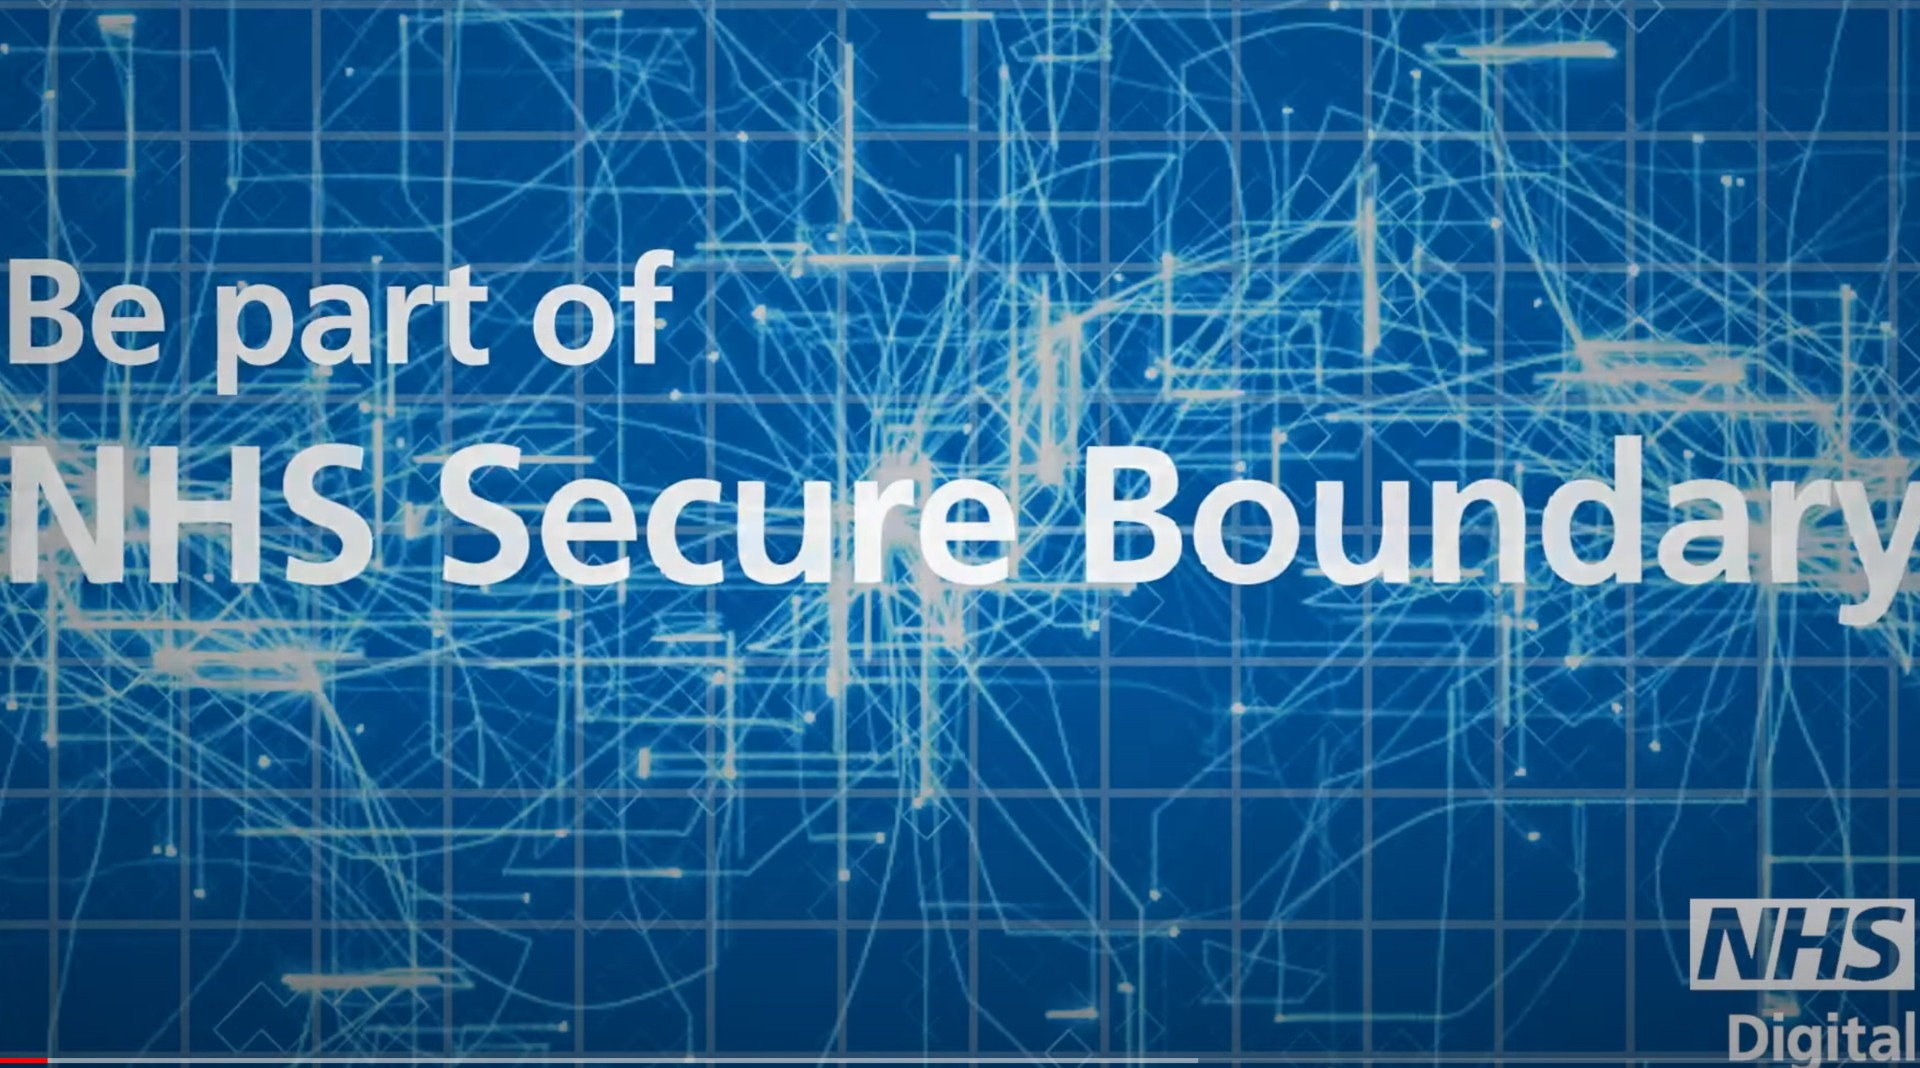 Graphic showing name of secure boundary